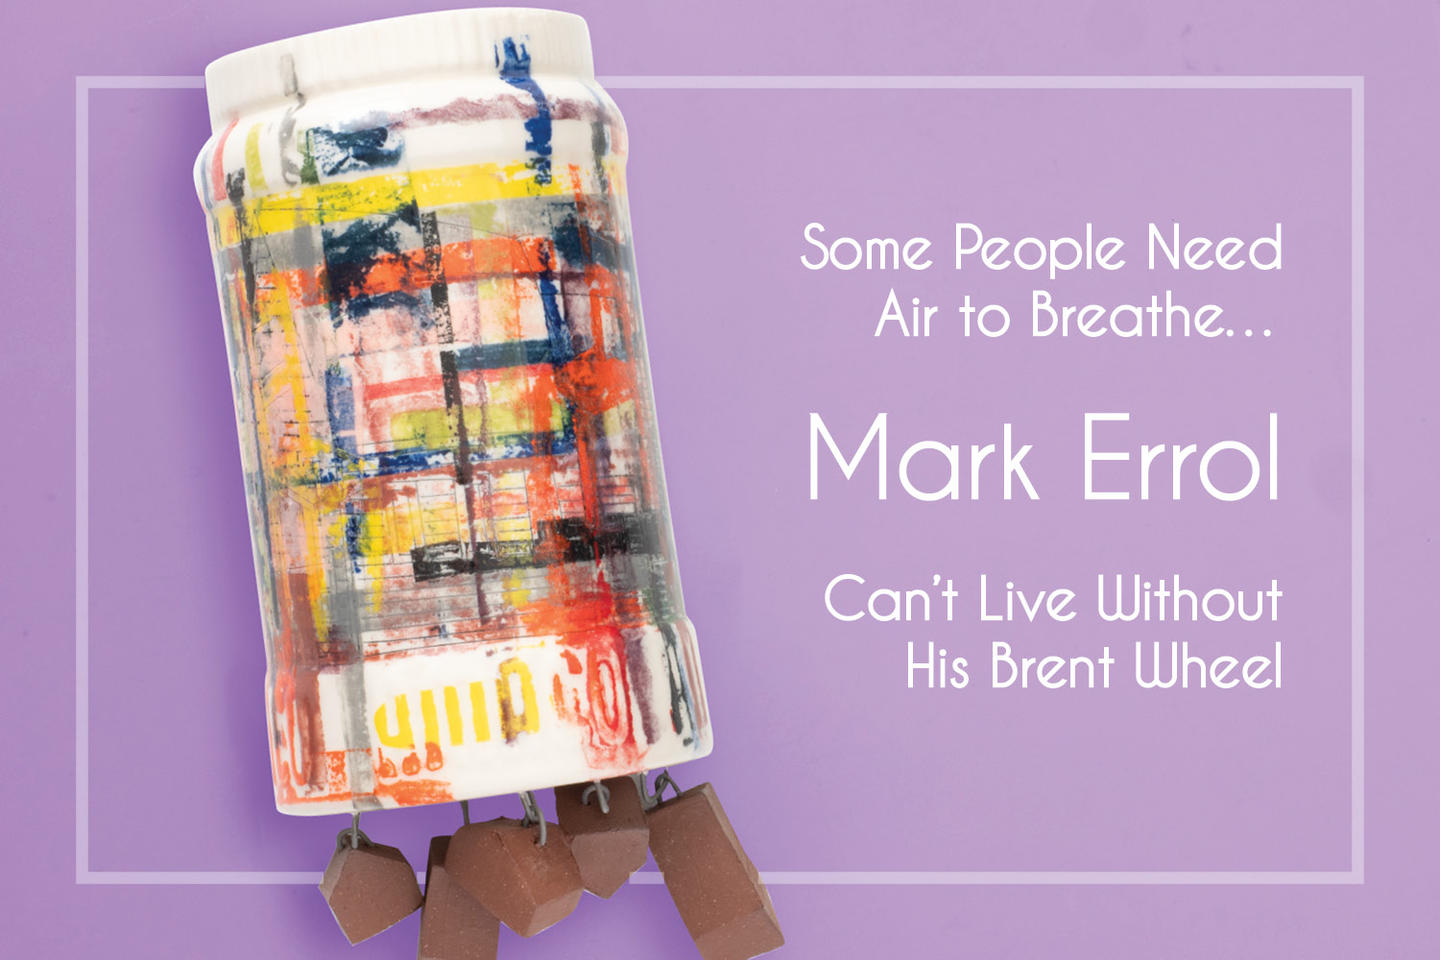 Some People Need Air to Breathe. Mark Errol Can't Live